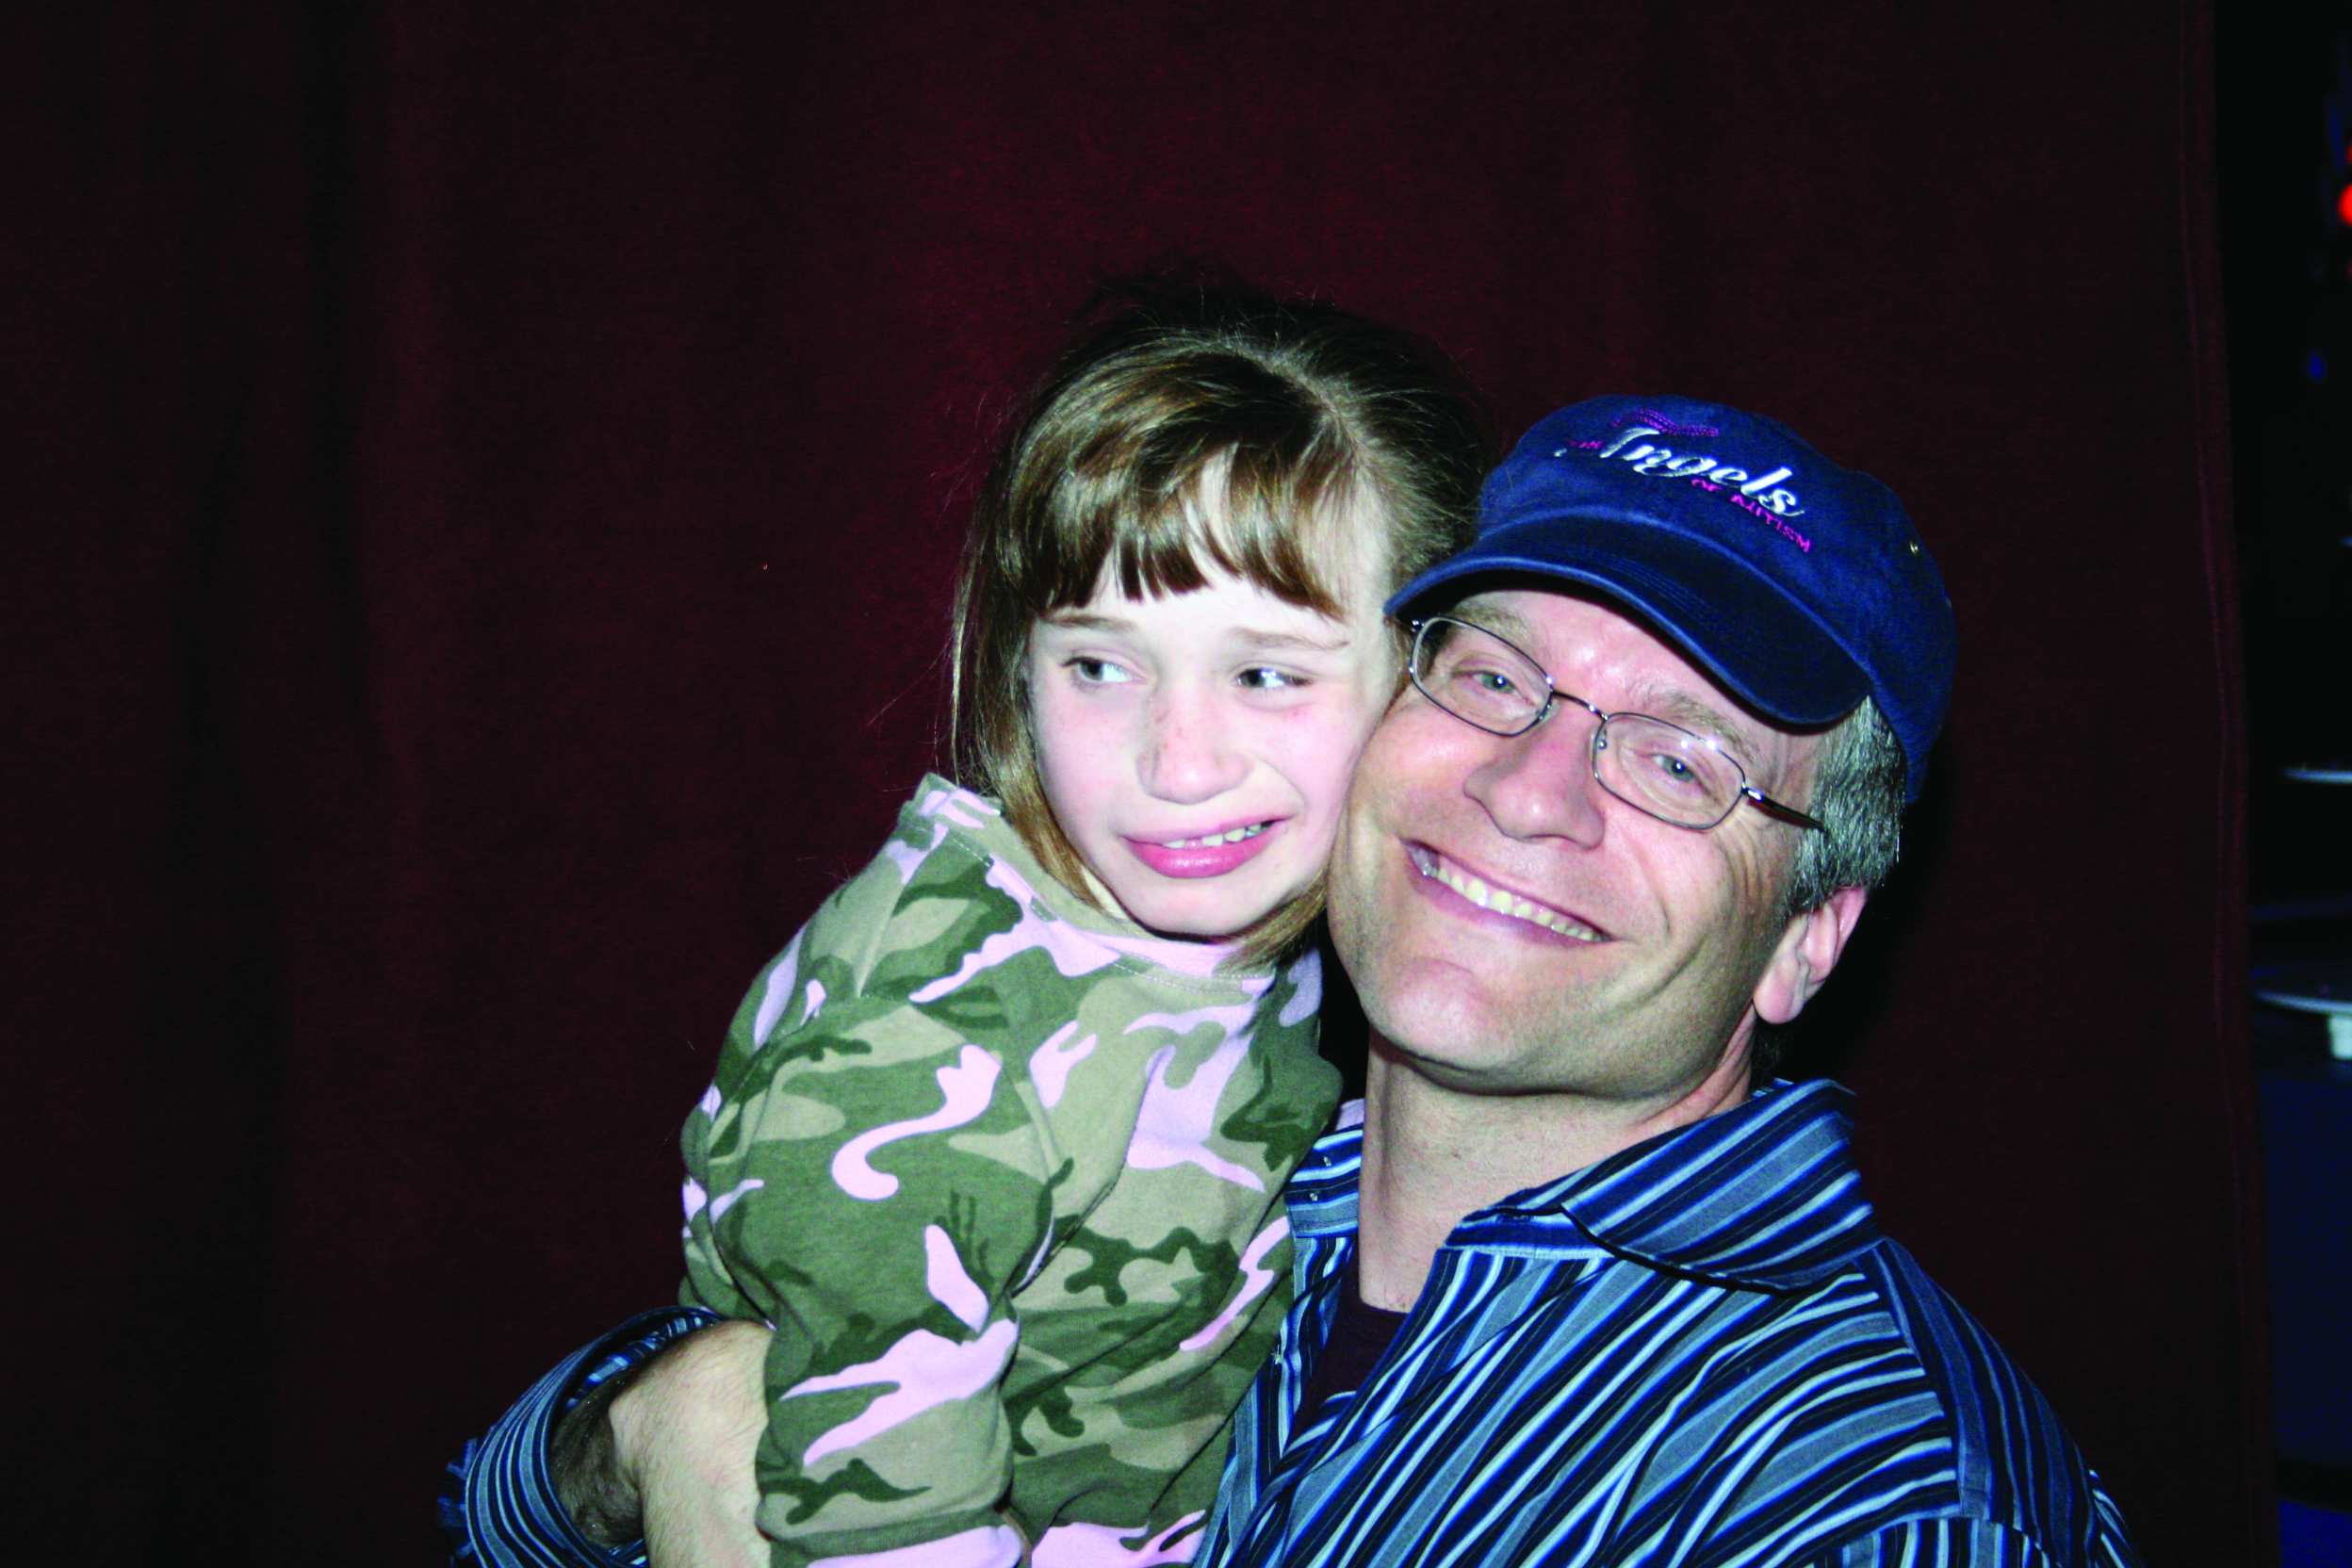 Including your child with special needs in family outings, even everyday errands, is worth it. Jonathan Singer, the father of a teen with Phelan-McDermid Syndrome shares his insights on how and why to make it work.